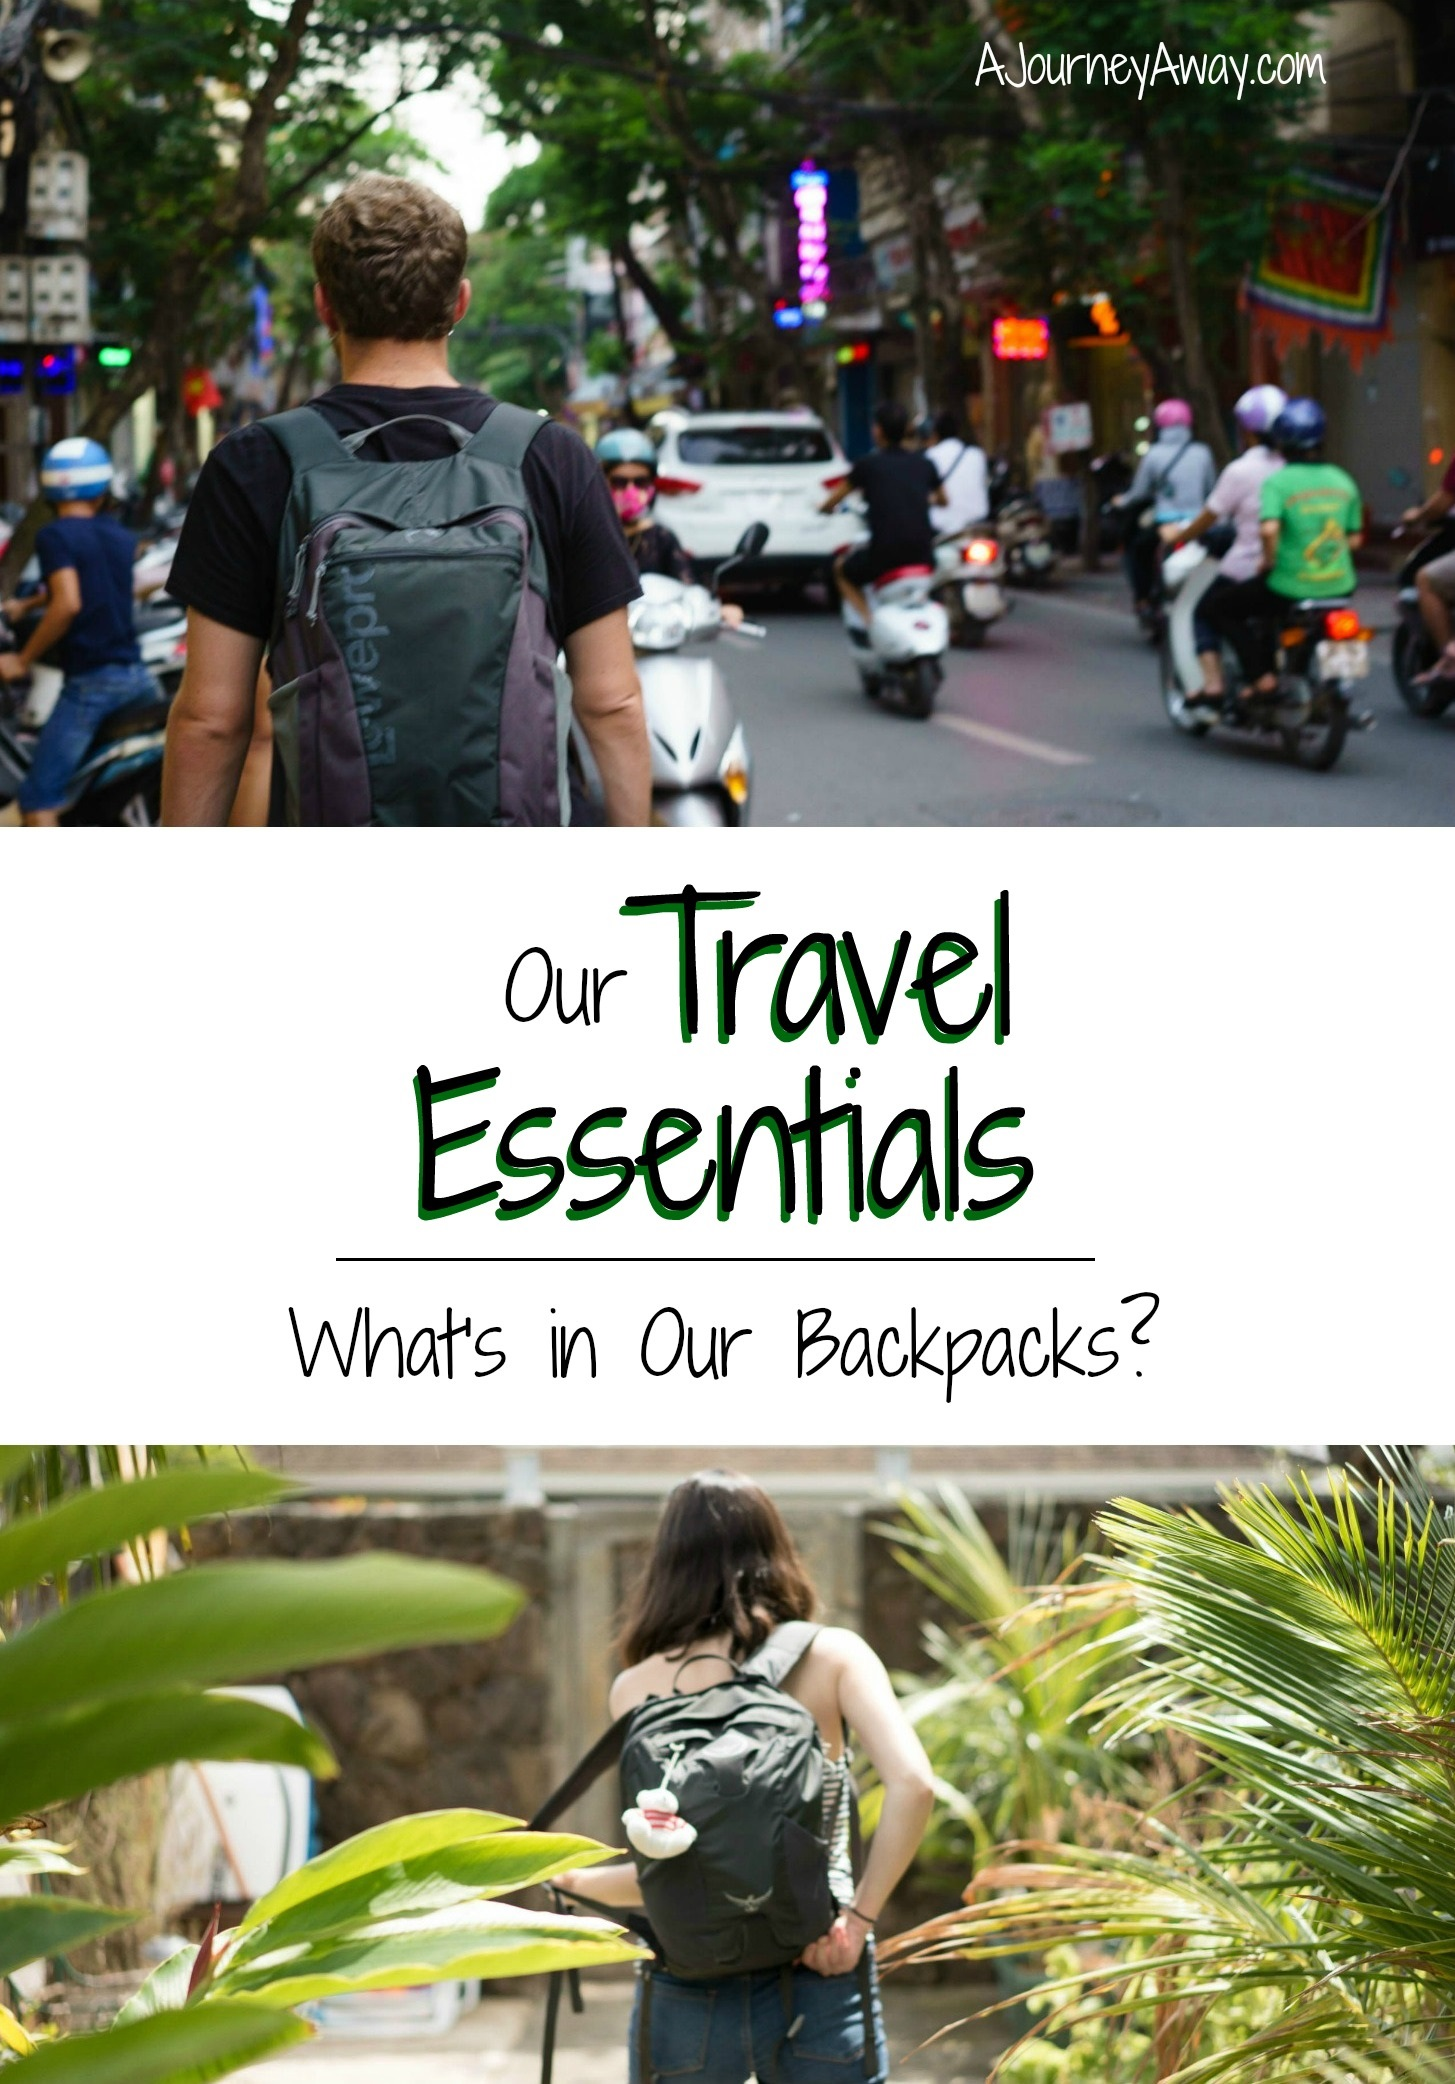 Travel essentials: what's in our backpacks? | A Journey Away travel blog